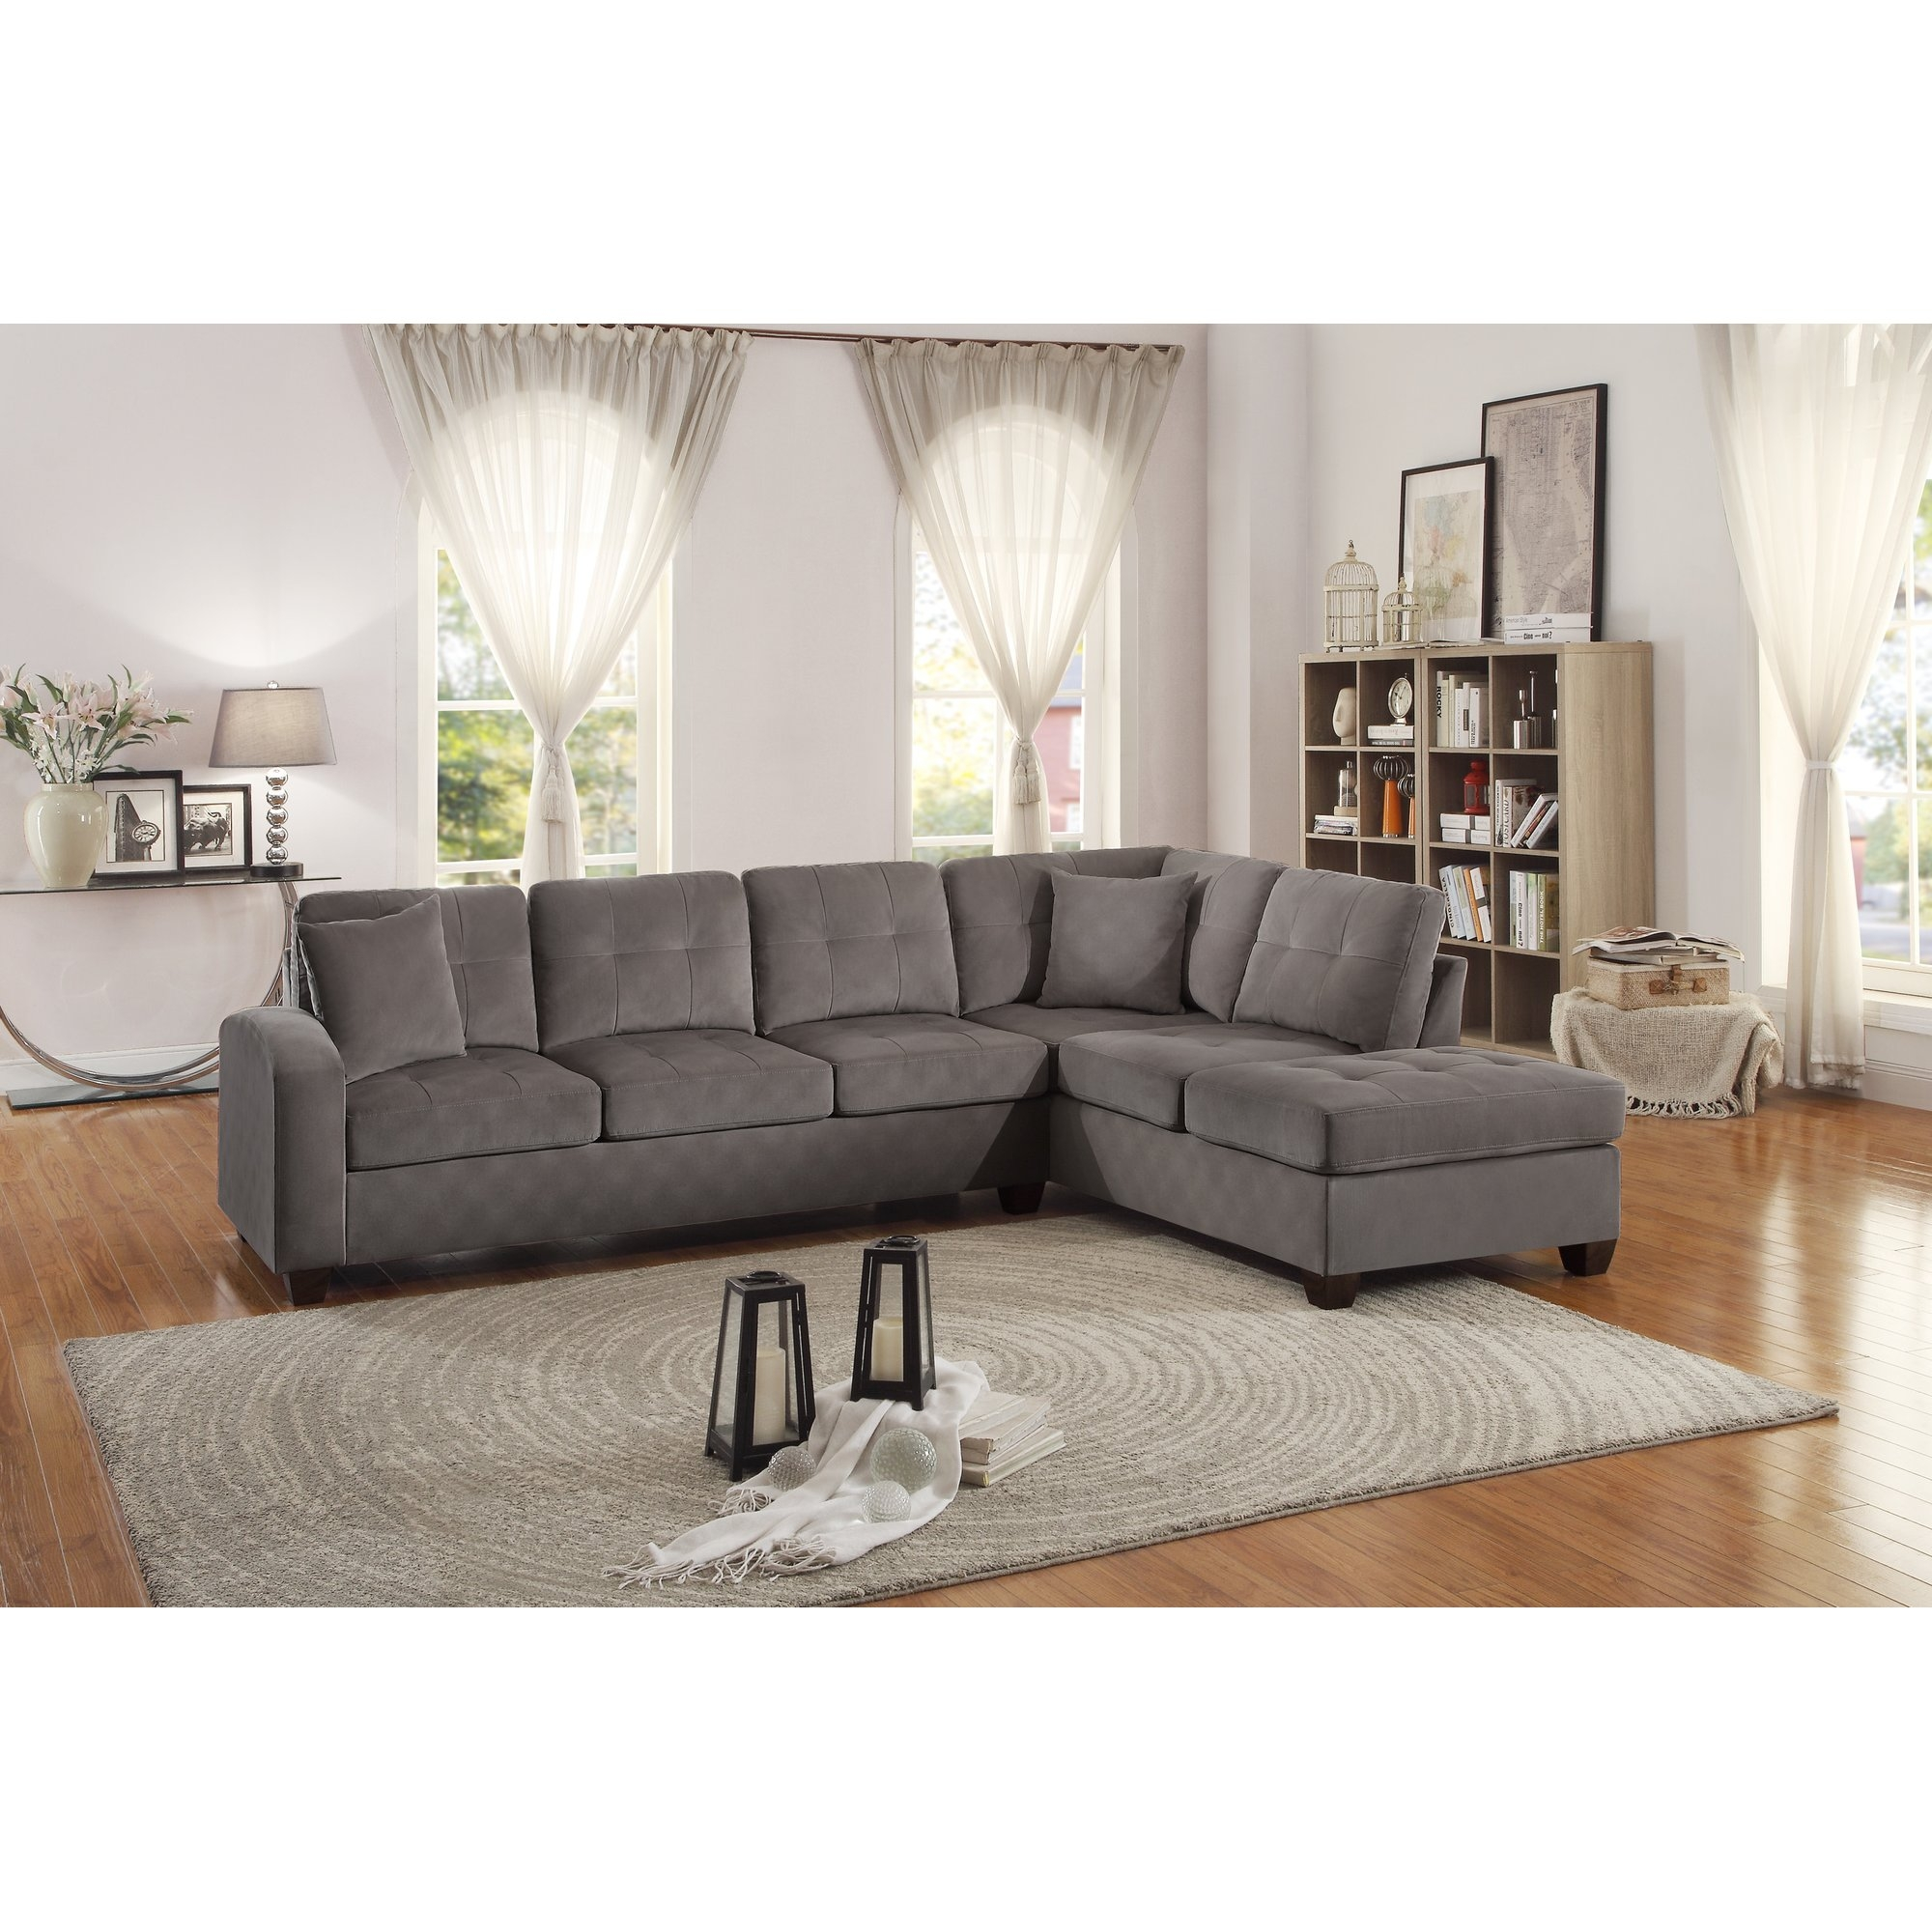 Colorful Sofas Colorful Sectional Sofas Sofa Ideas